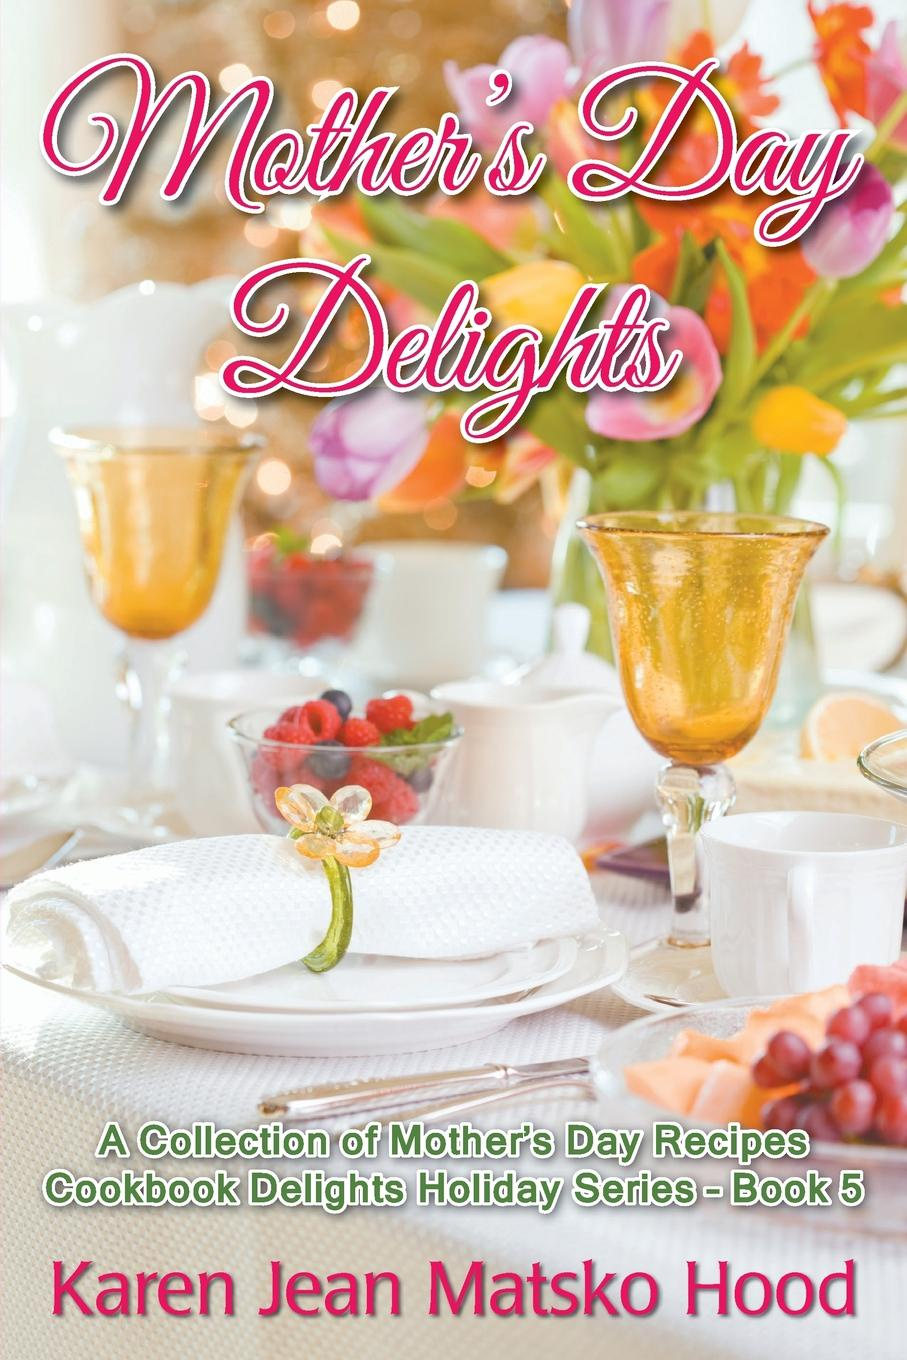 Karen Jean Matsko Hood Mother's Day Delights Cookbook. A Collection of Mother's Day Recipes the book lover s cookbook